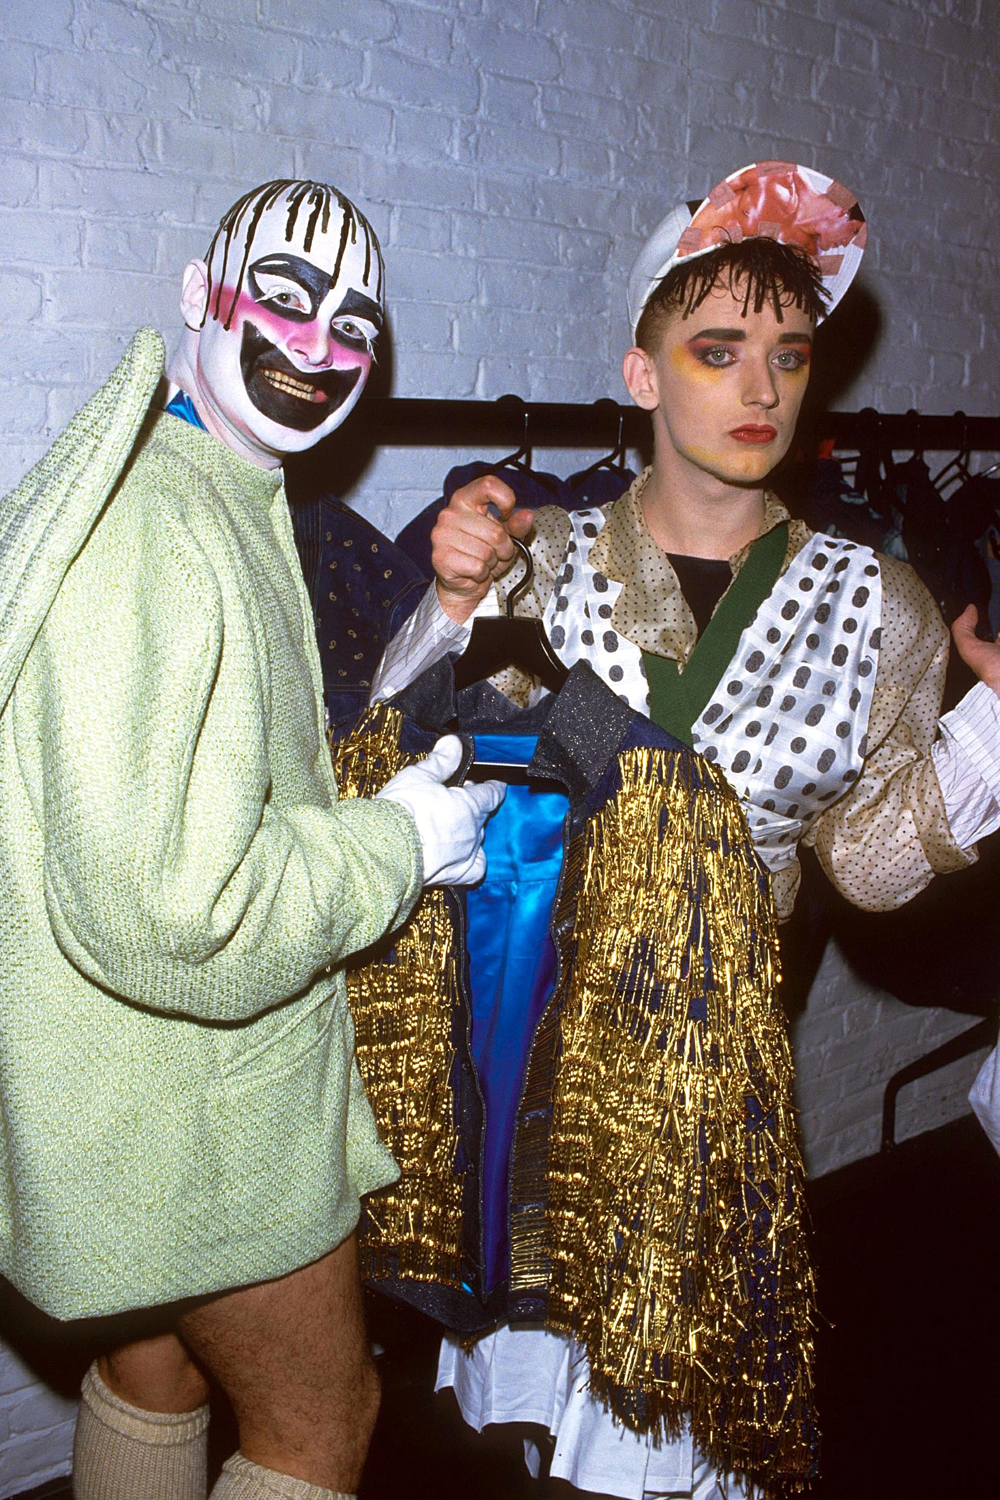 'blitz' designer collection fashion show at the albery theatre, london, britain 1986